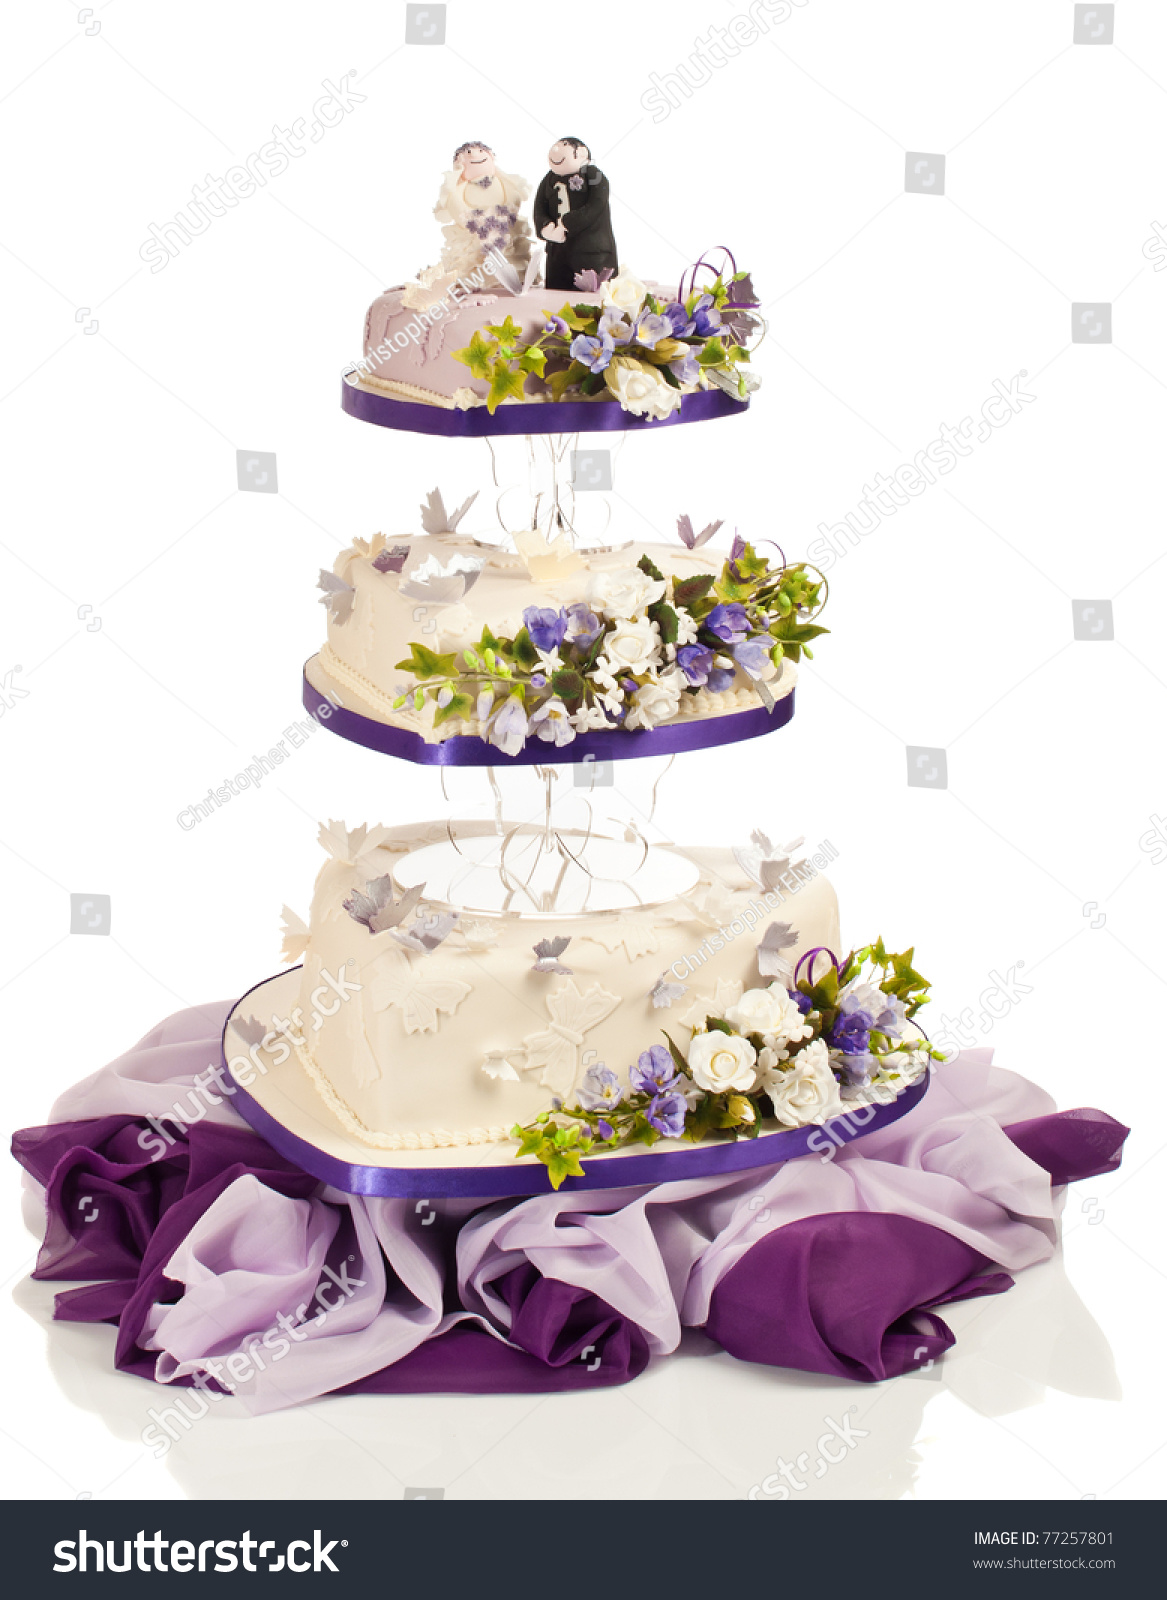 Heart Shaped Wedding Cake In Three Tiers With Flowers And